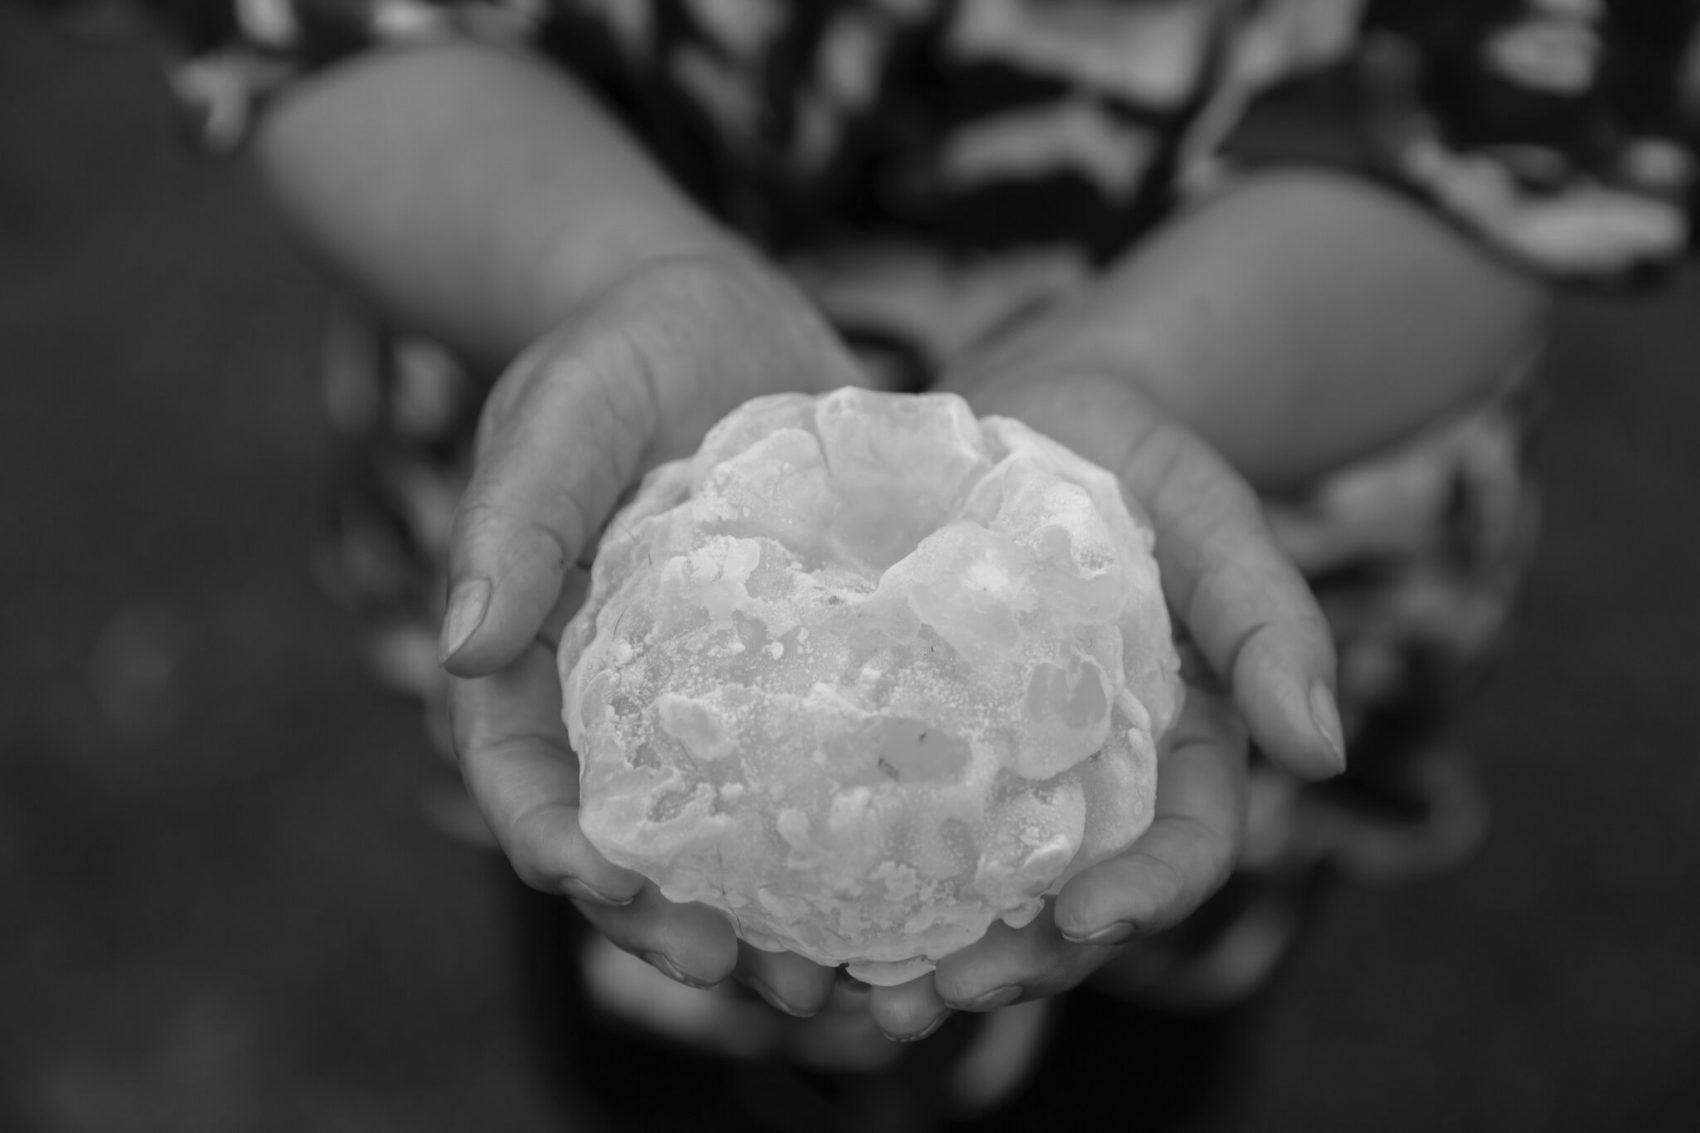 Thunderstorms can produce massive hail